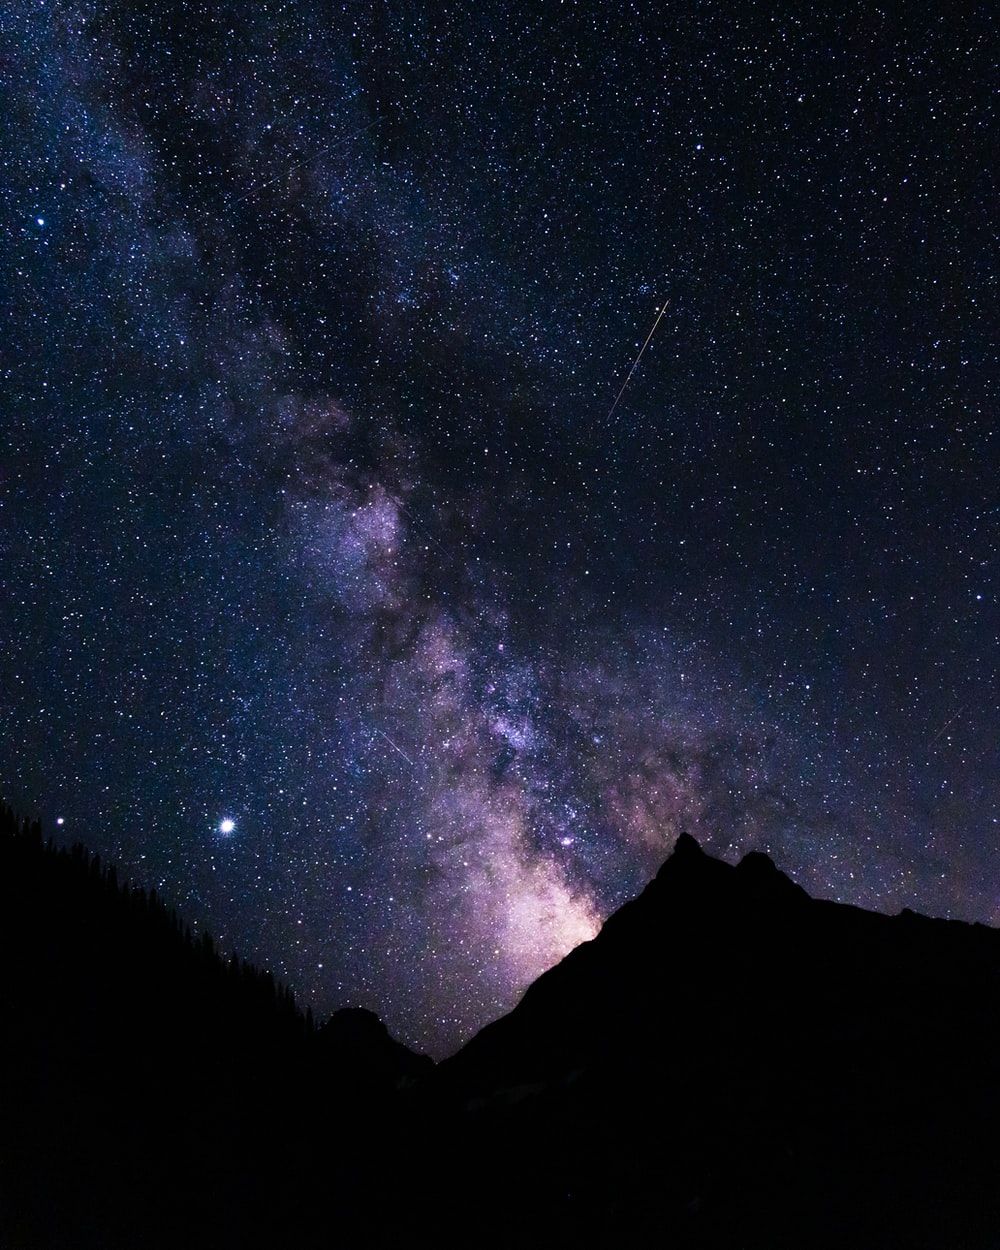 starry night over the mountain